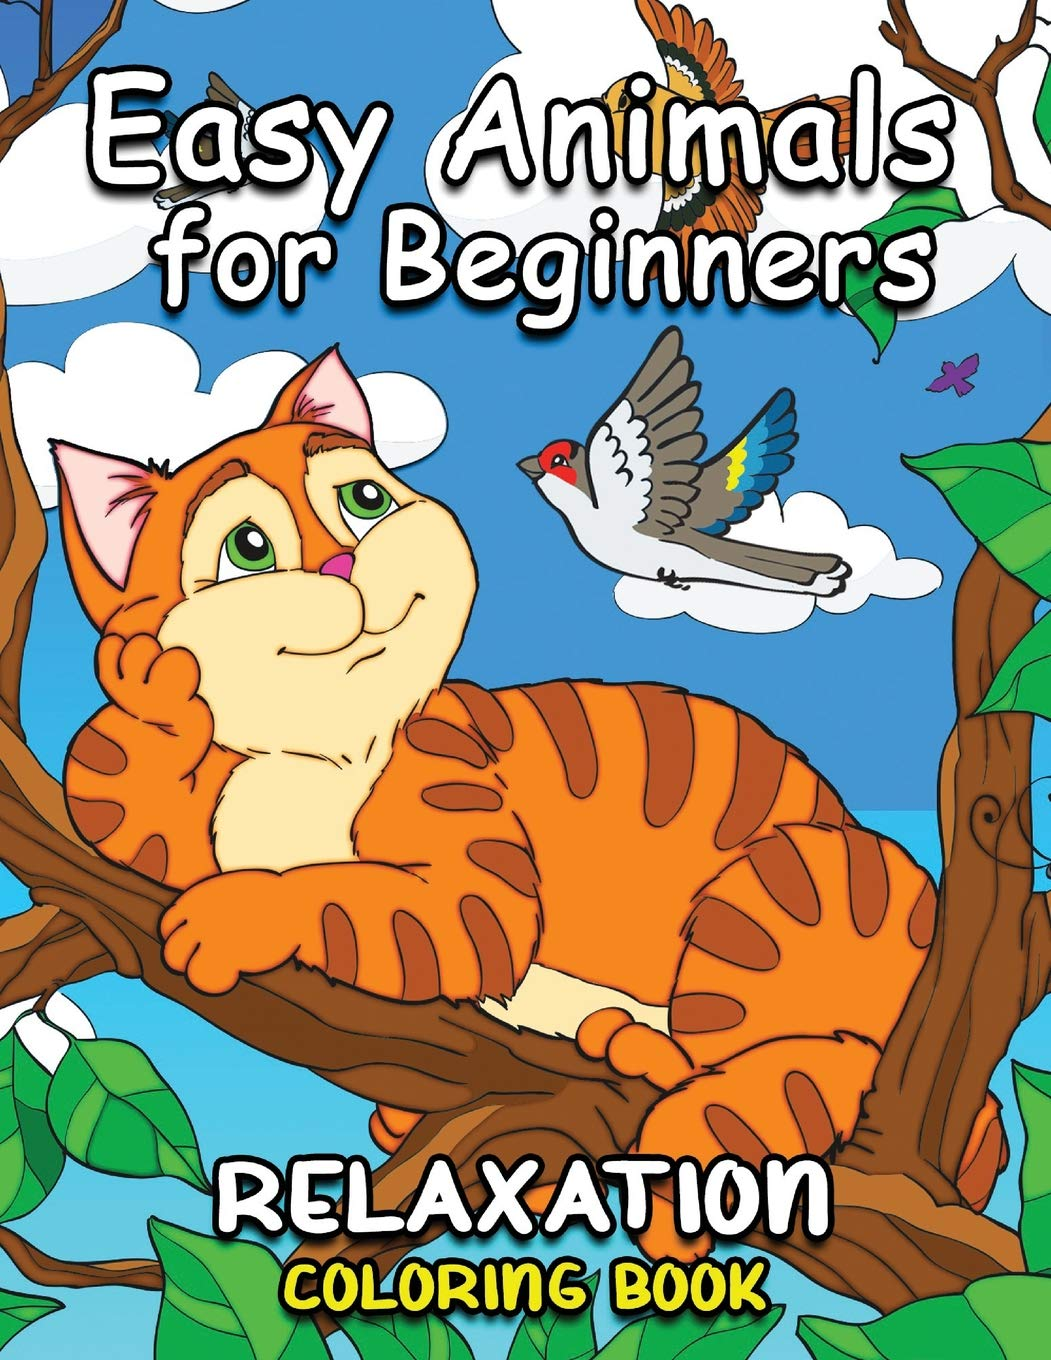 Easy animals for beginners easy and beautiful animals coloring pages for adults paperback december 7 2018